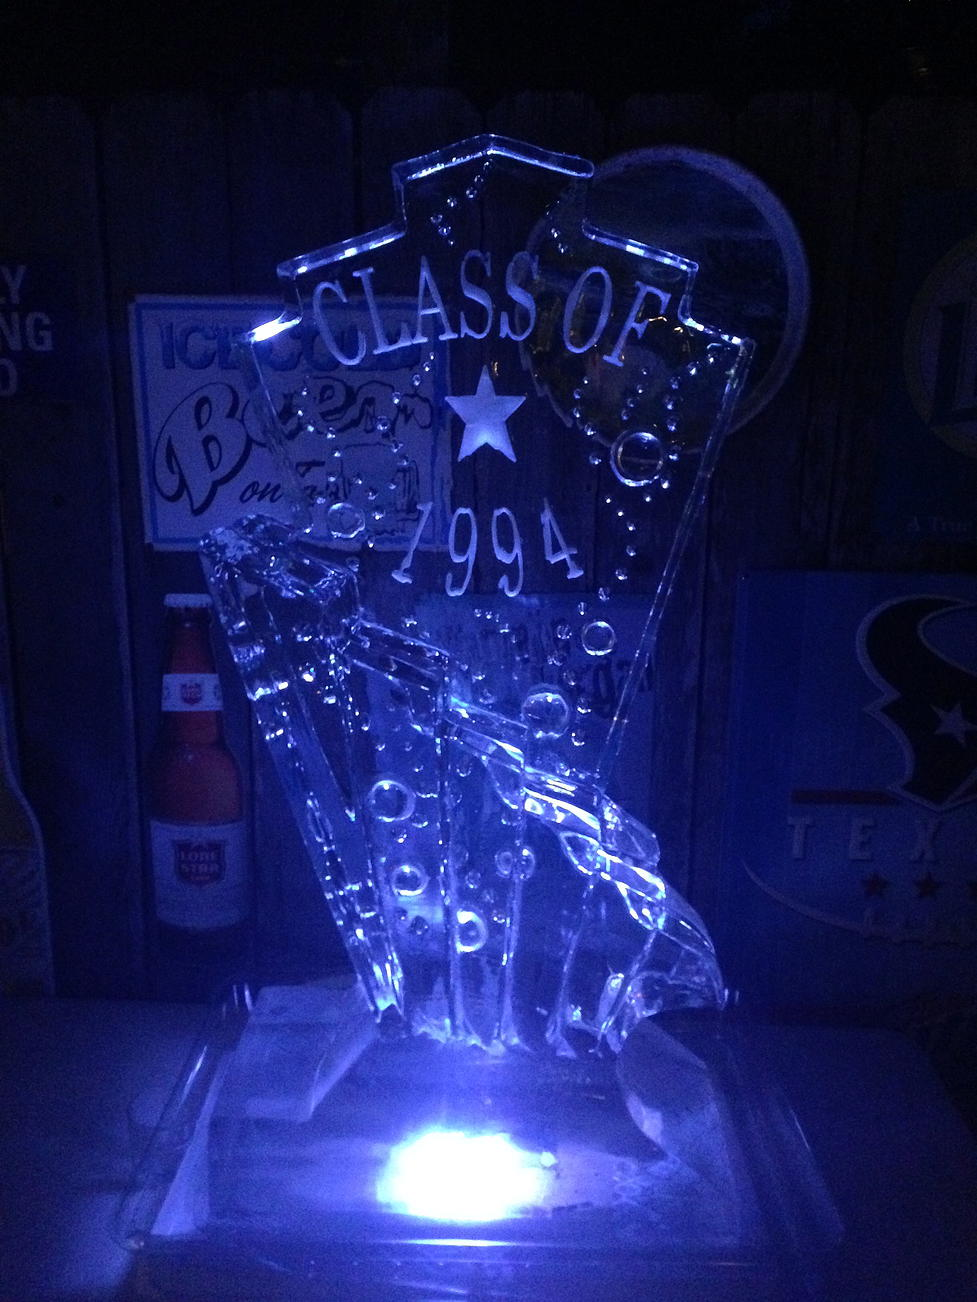 Art deco ice luge with logo